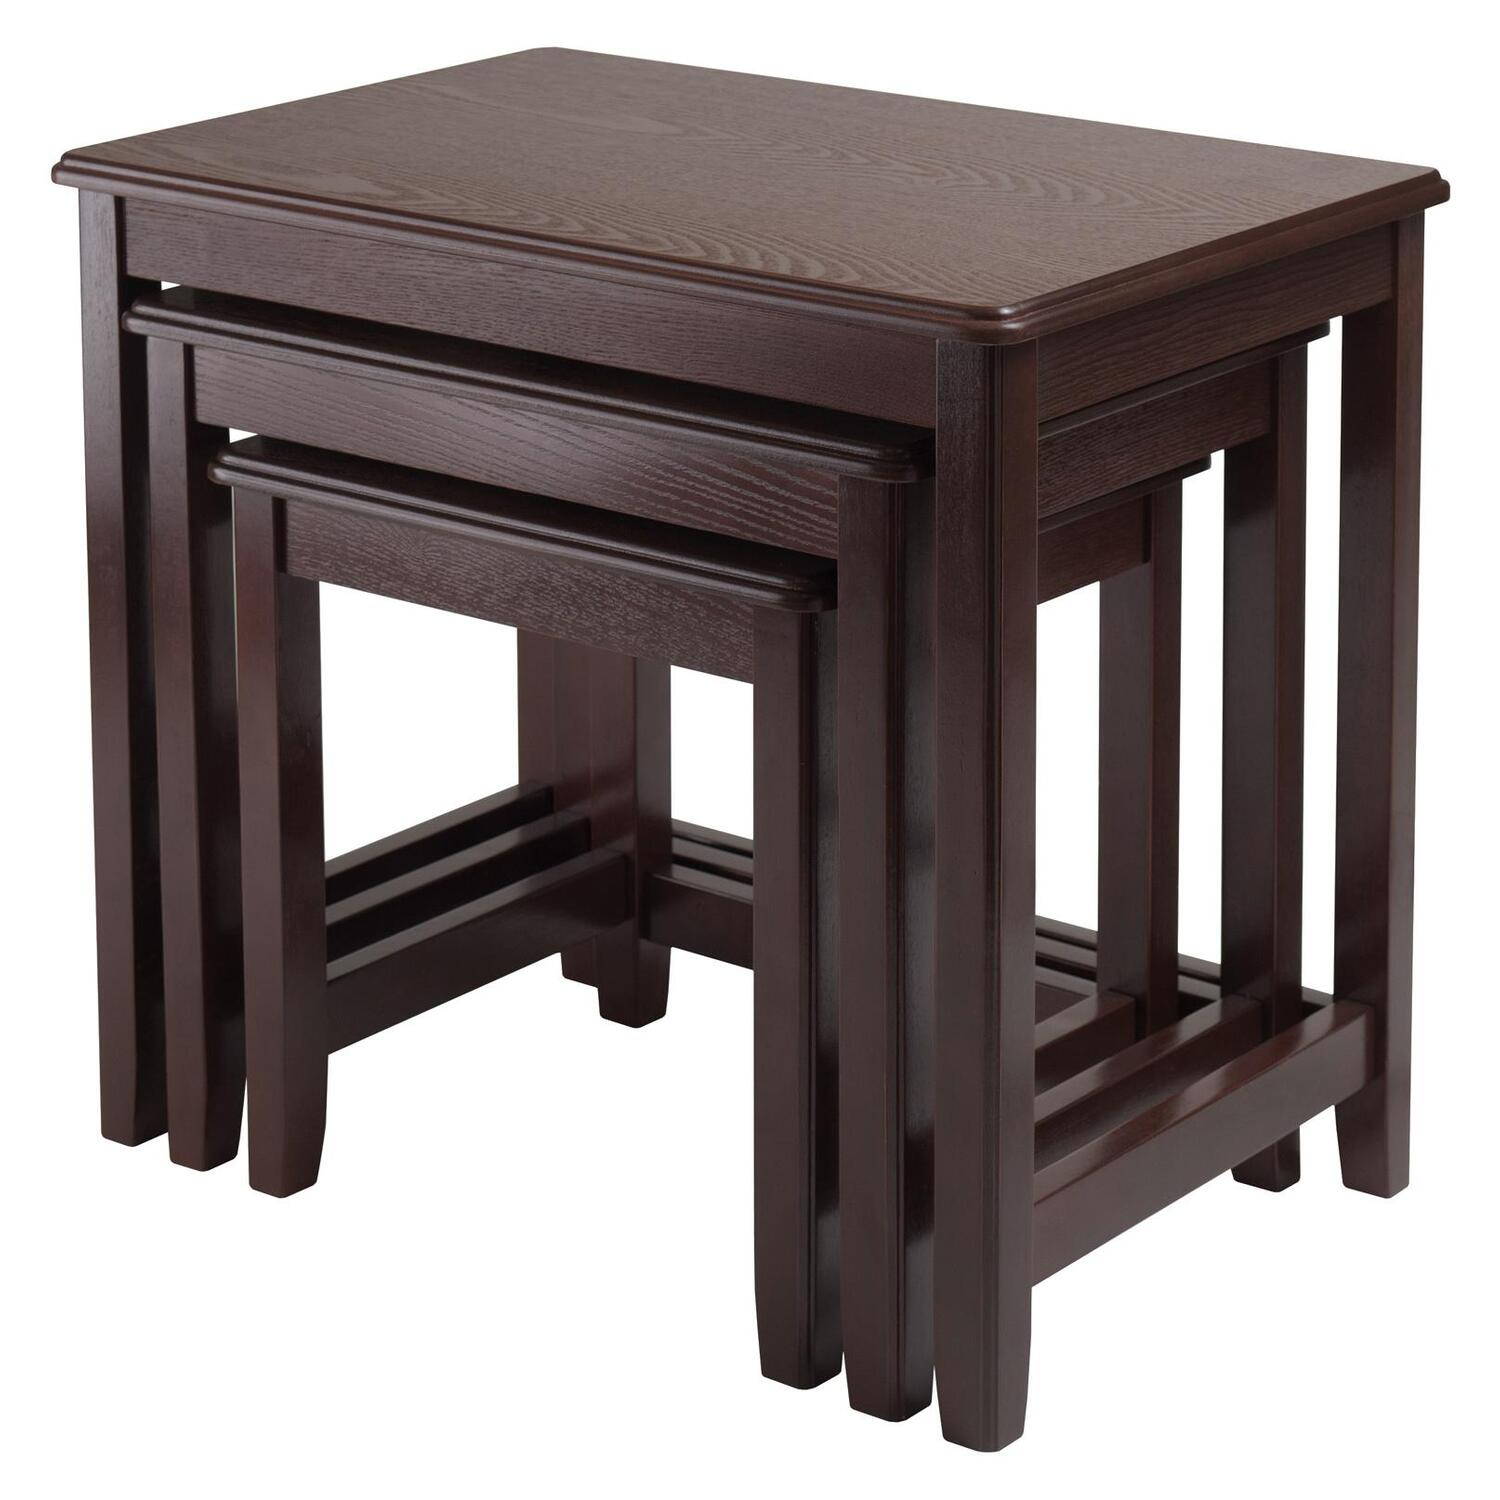 Trina 3pc Nesting Table 103 90 Ojcommerce